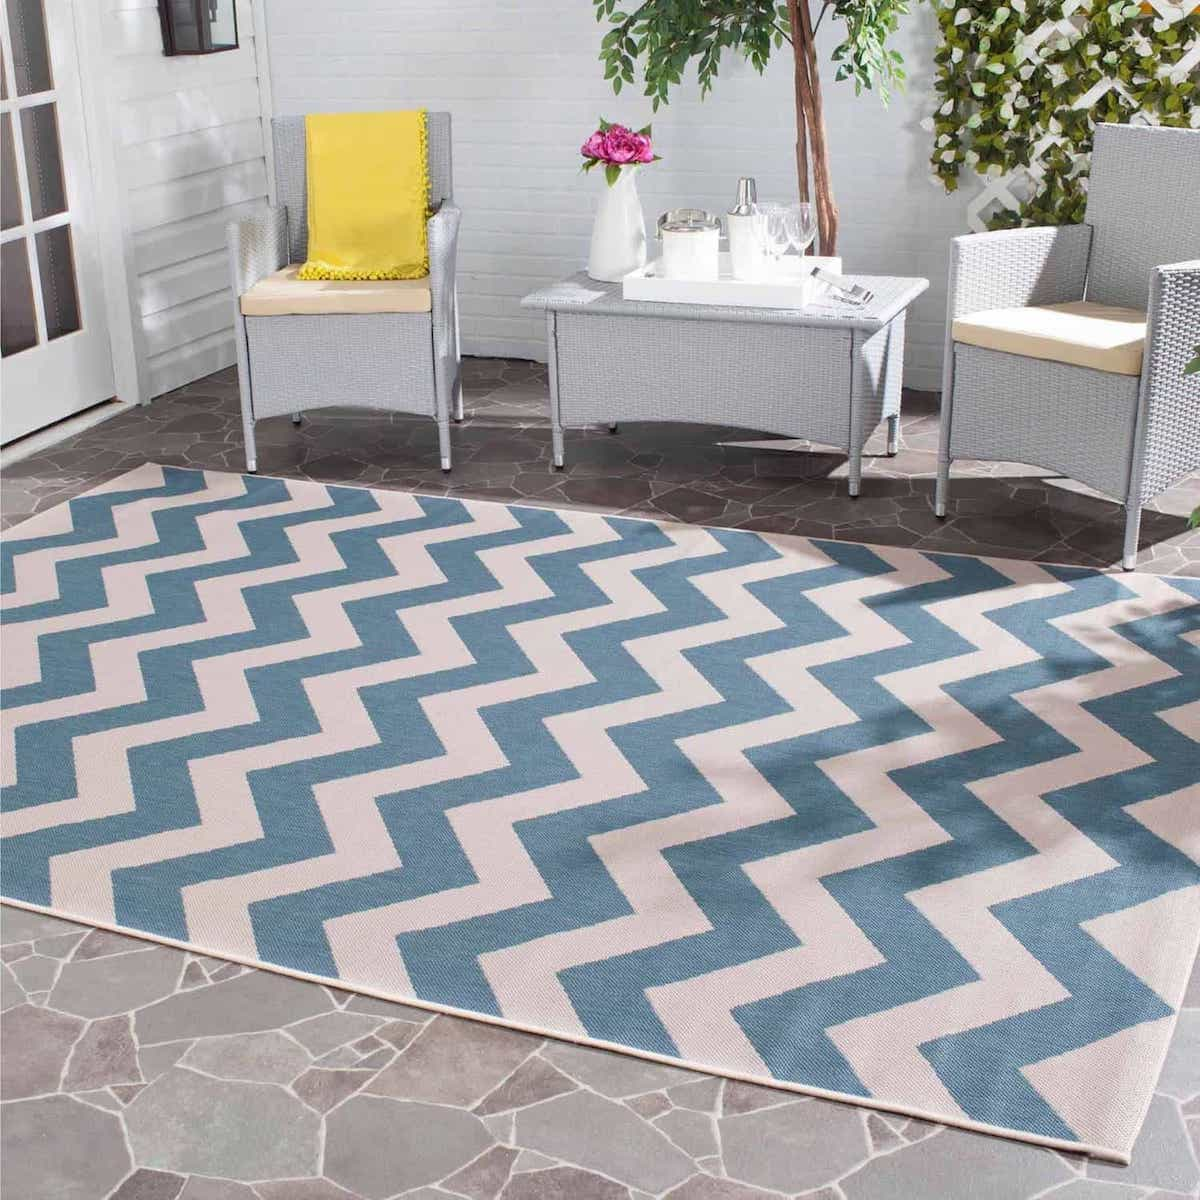 15 Beauty Outdoor Rugs You Ll Love Custom Home Design